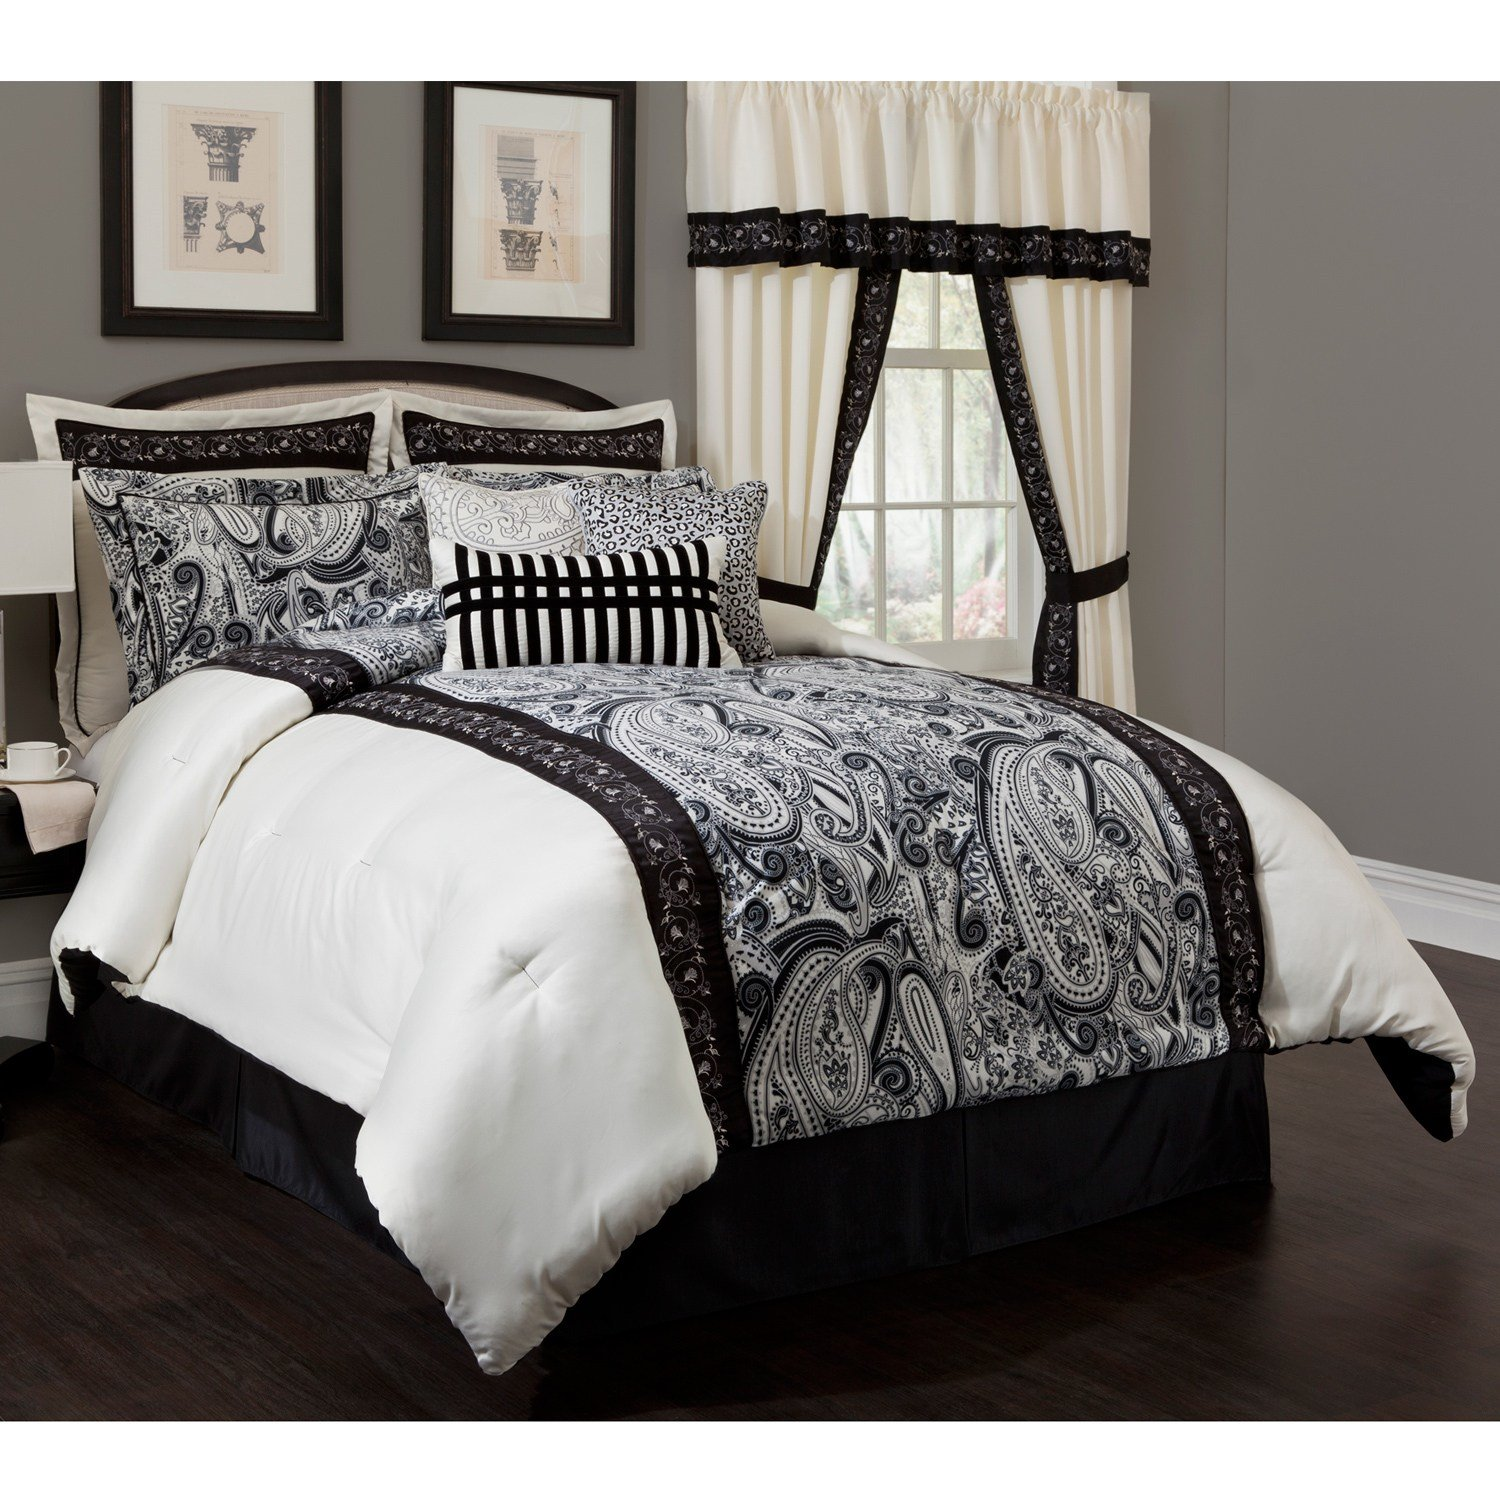 Best All Black Bed Set Blue And White Striped Comforter Black With Pictures